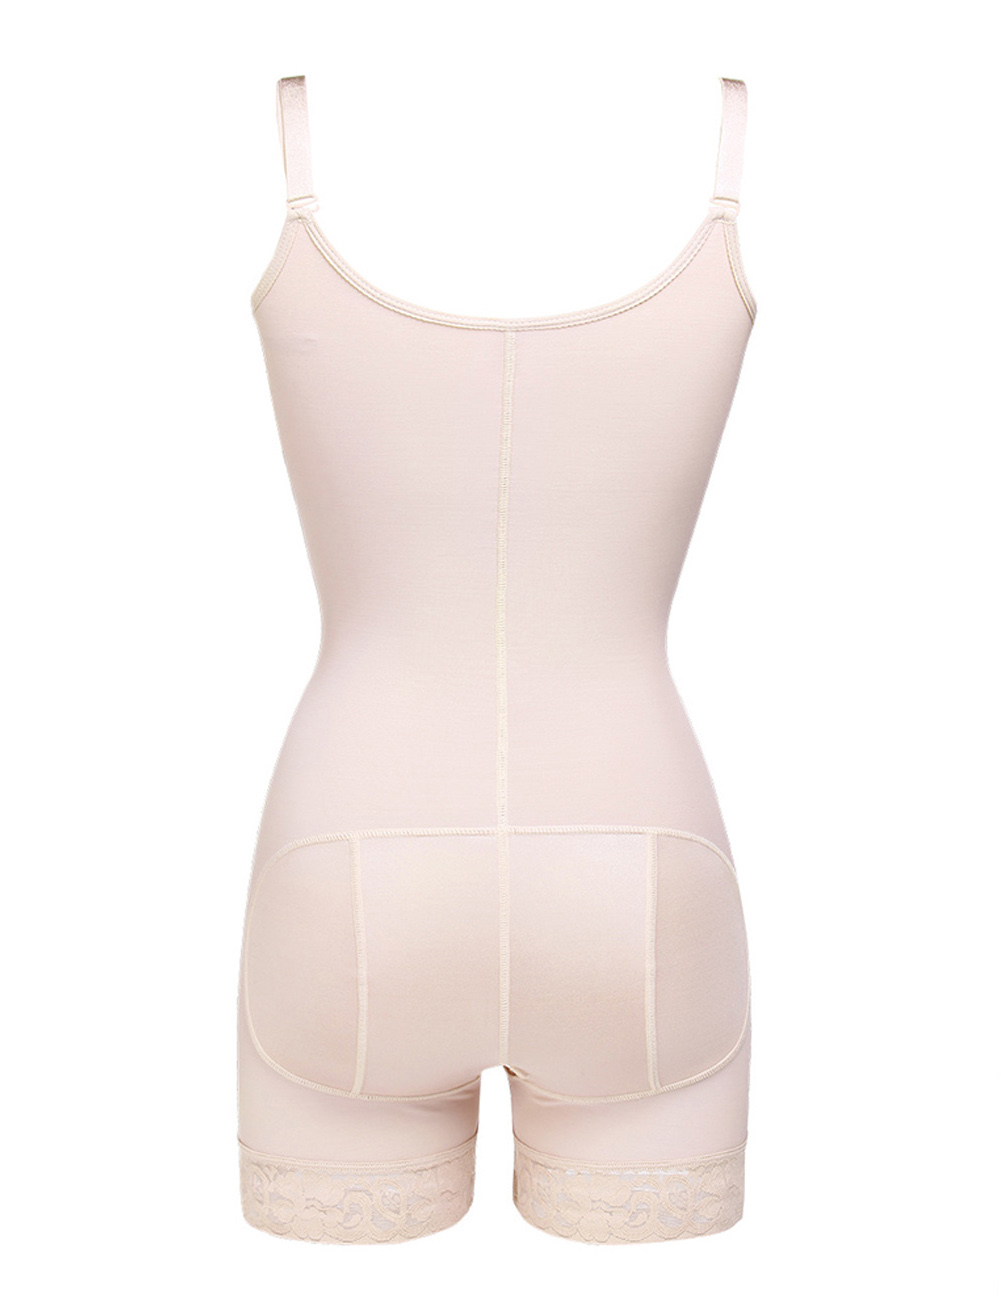 //cdn.affectcloud.com/lover-beauty/upload/imgs/Shapewear/Full_Body_Shaper/B180041SK01/B180041SK01-201910155da560bfb7a29.jpg